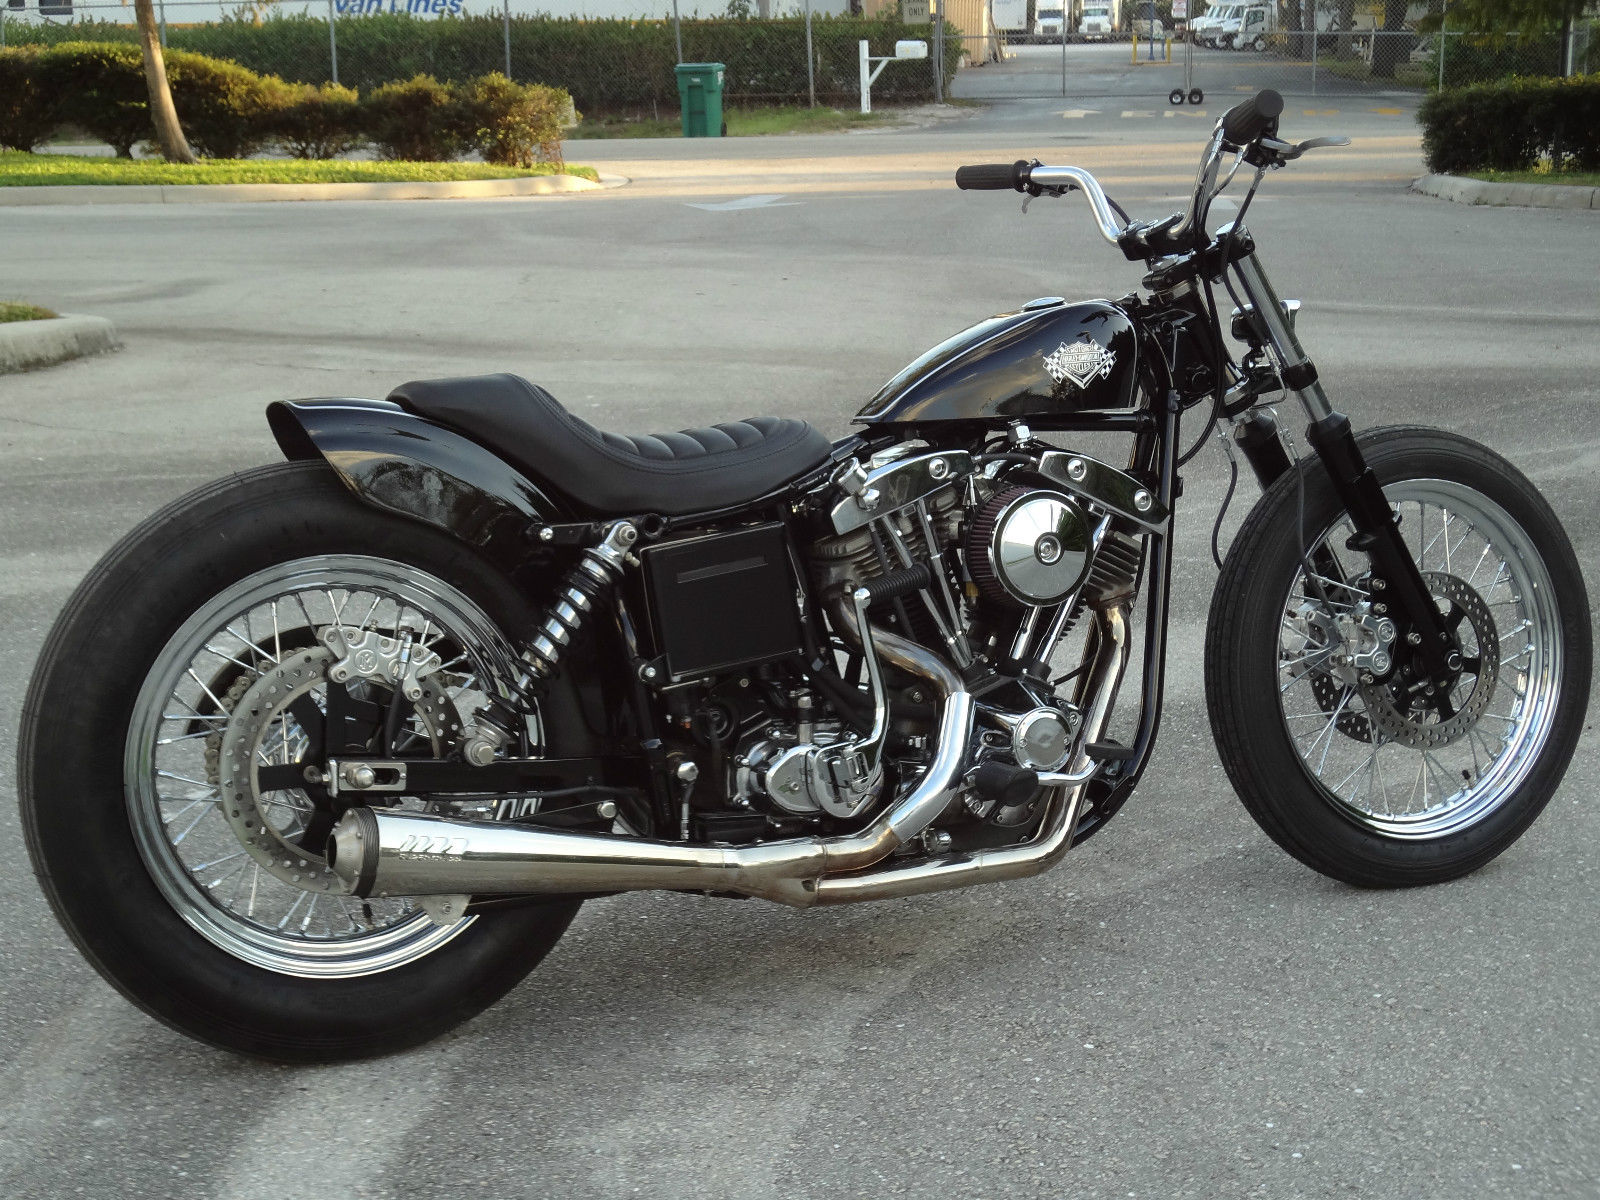 Although the seventies AMF era was not good for Harley-Davidson this custom 1978 bike has been completely re-built.